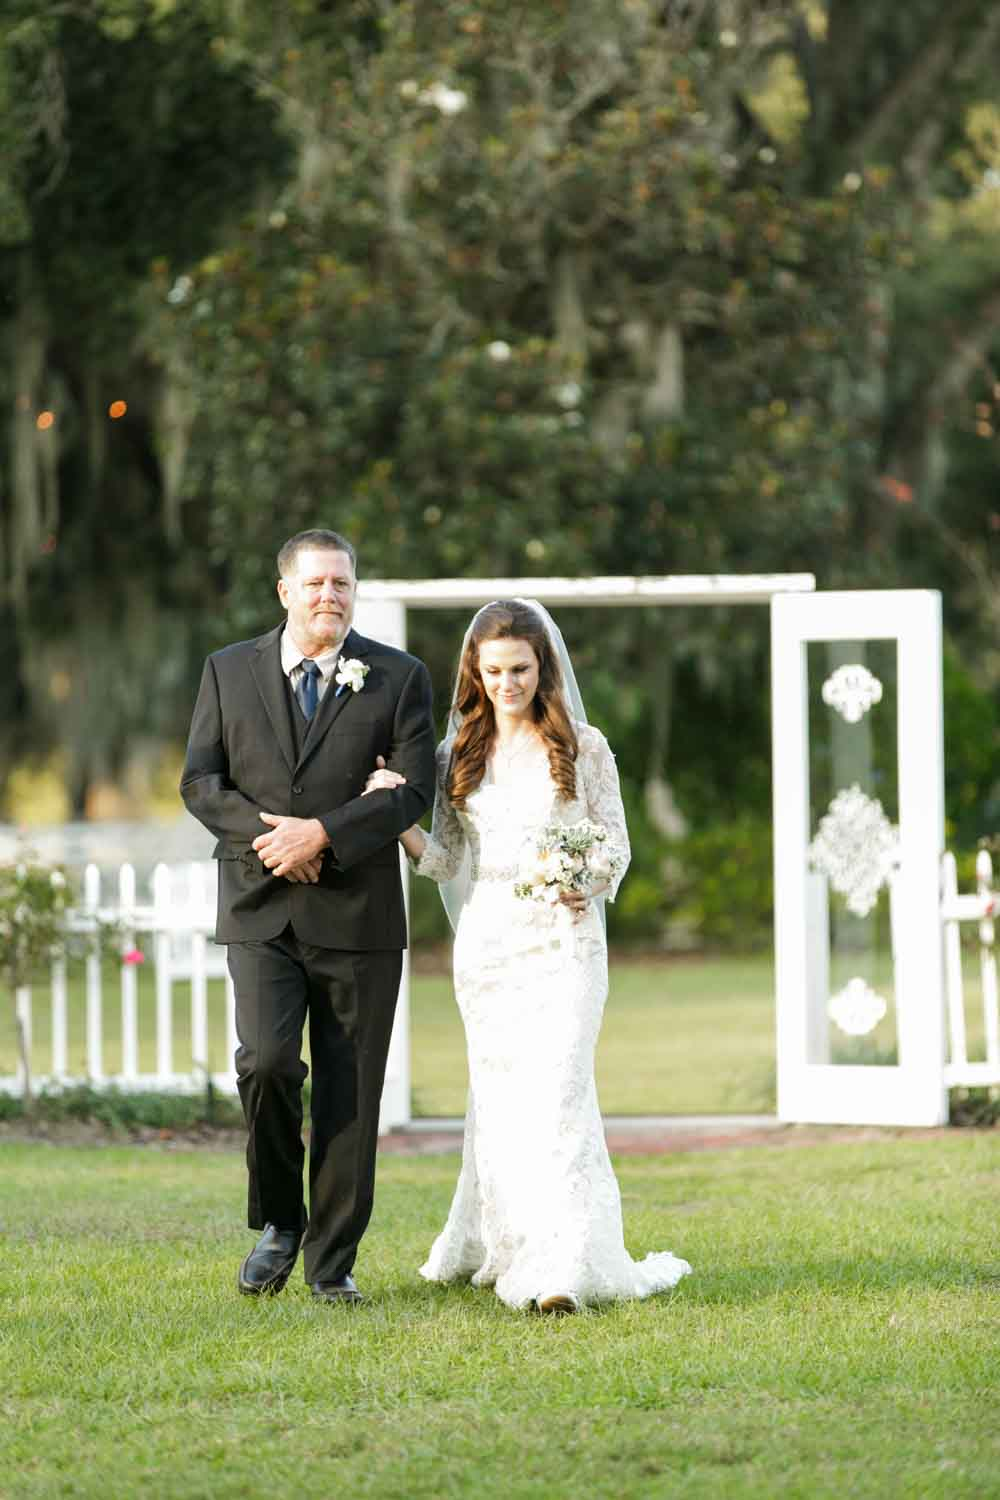 father walking bride up aisle for outdoor ceremony at Rocking H Ranch